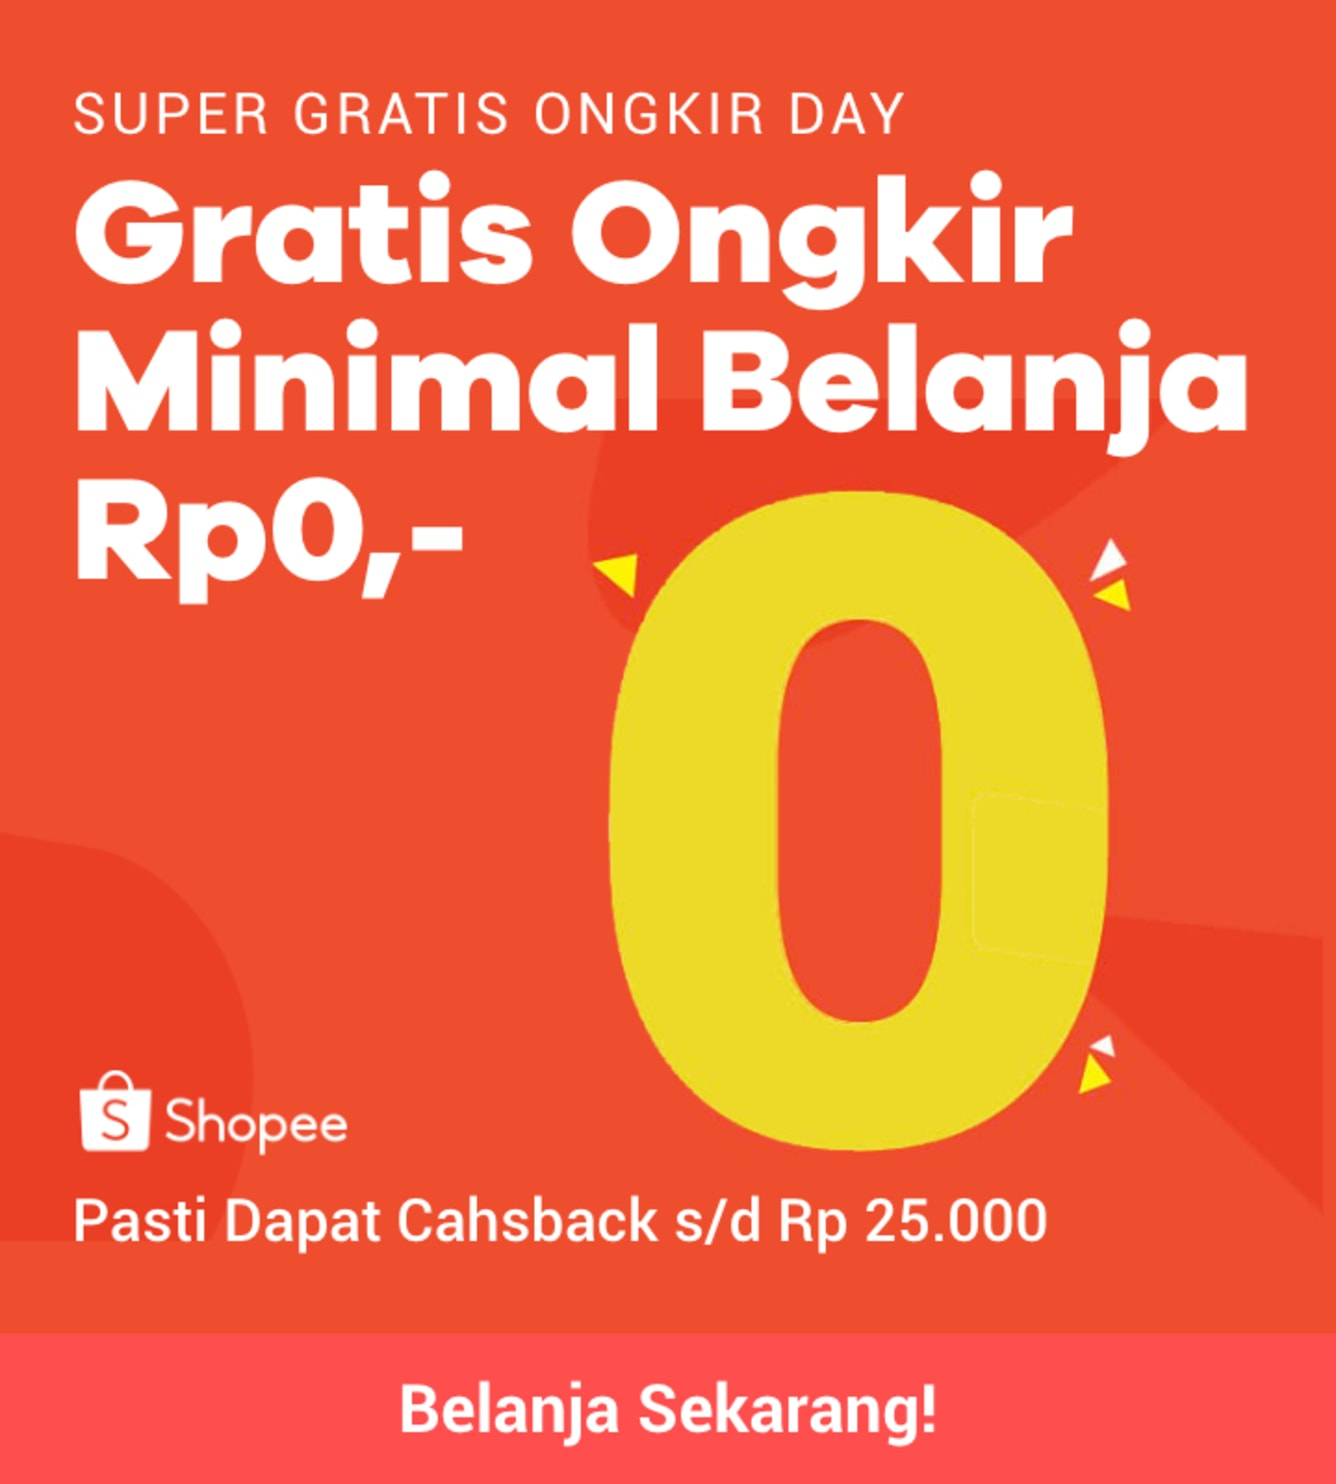 Week 20 - Shopee Free Ongkir